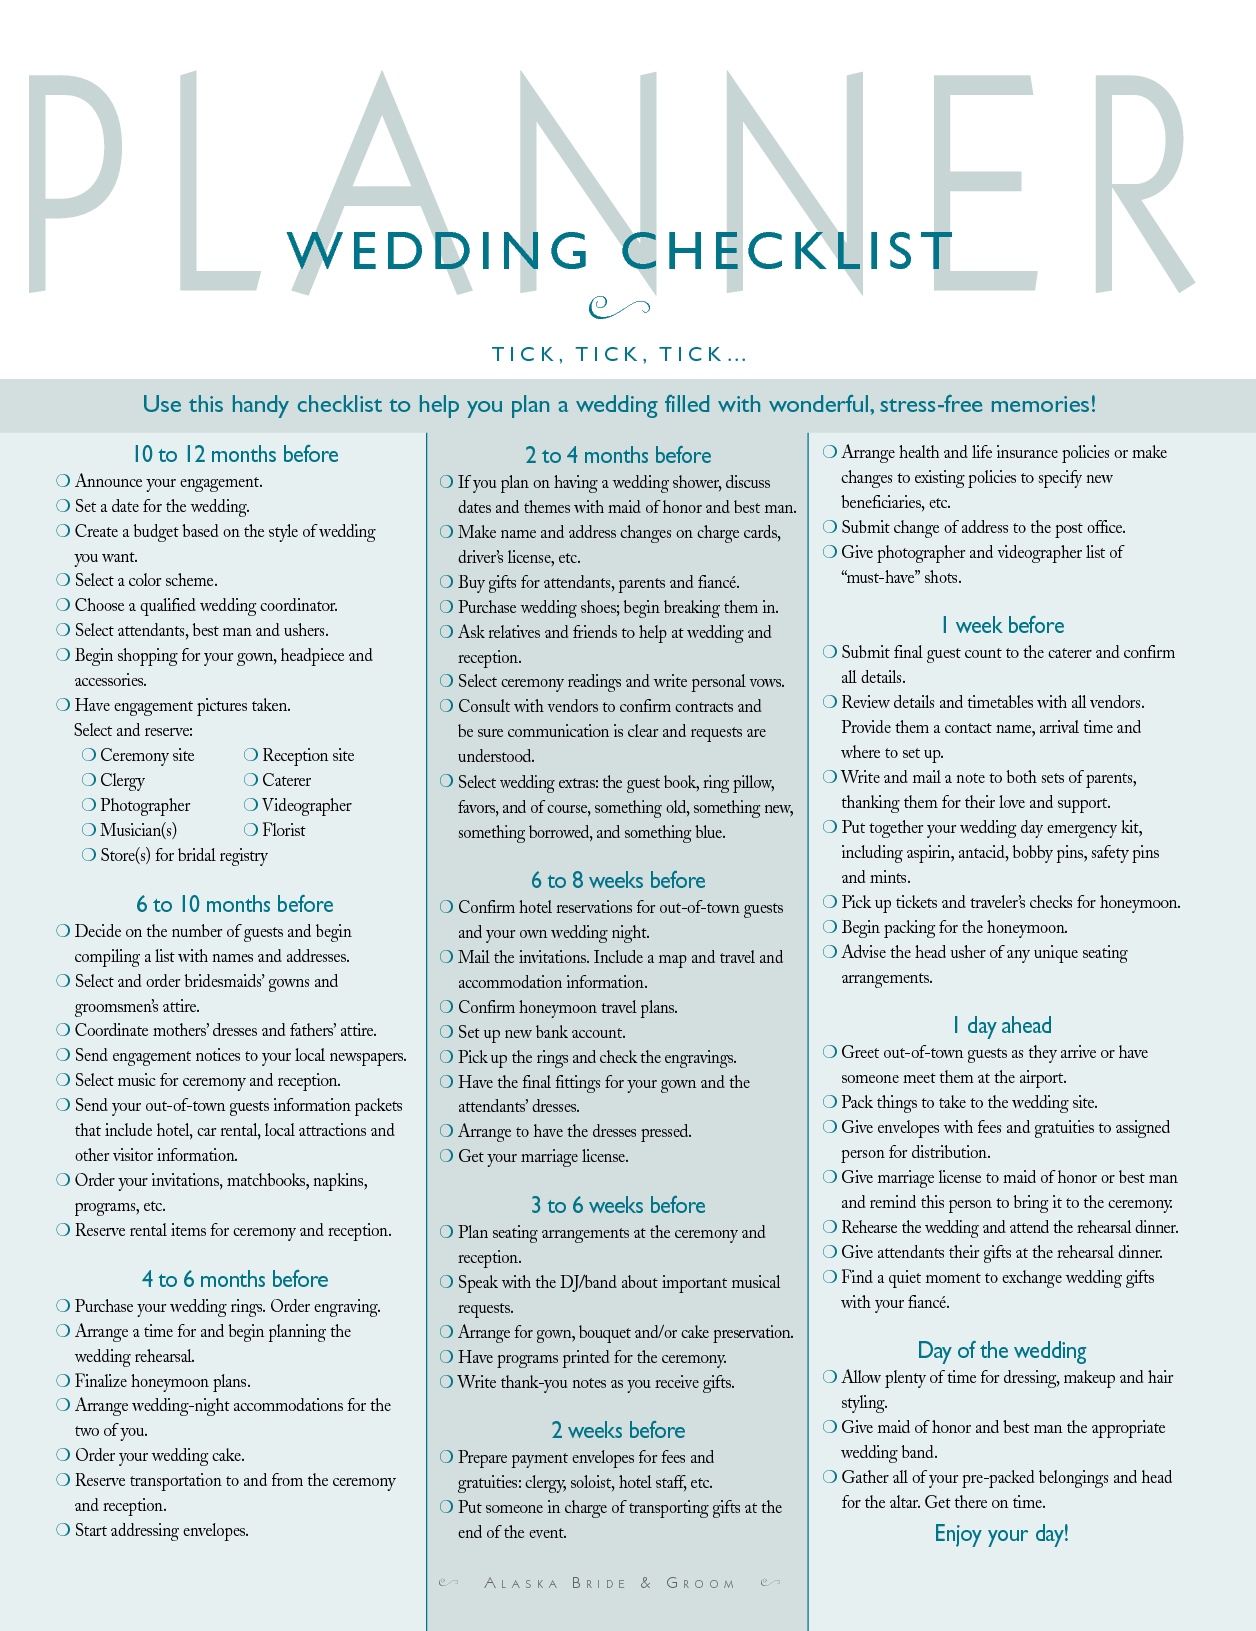 Best Wedding Checklist Printable